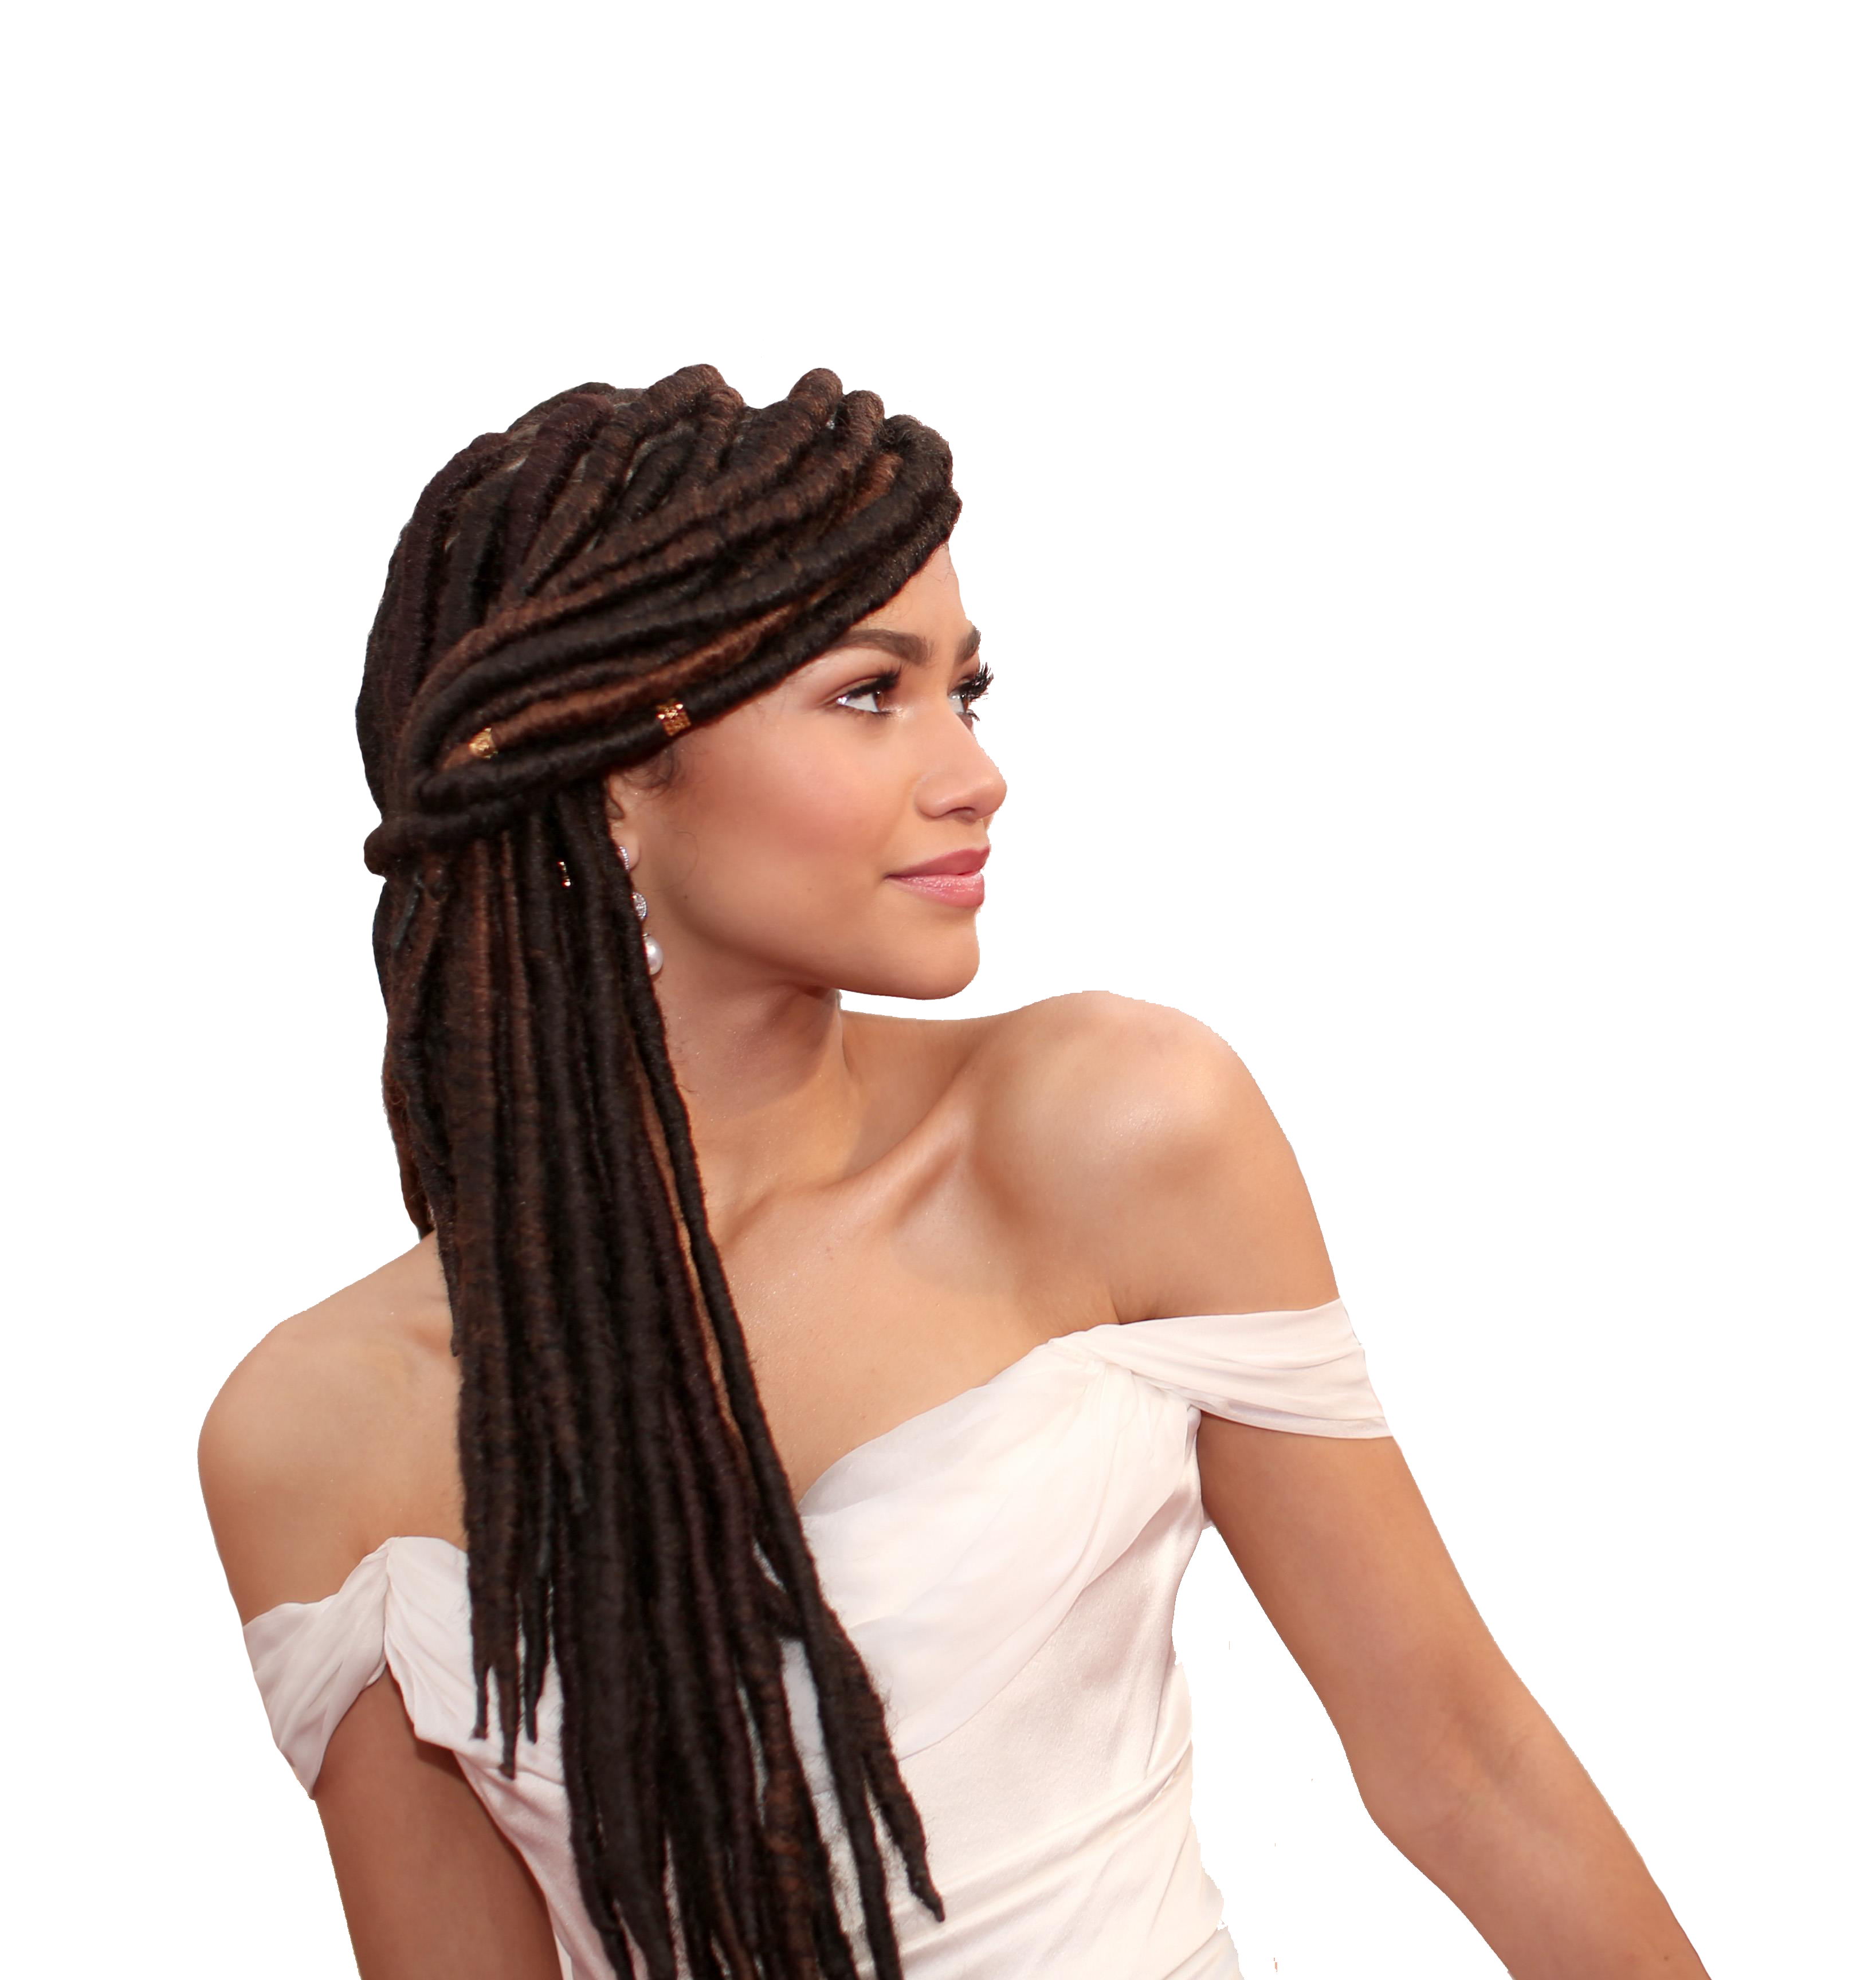 Zendaya transparent background. Png images pluspng by